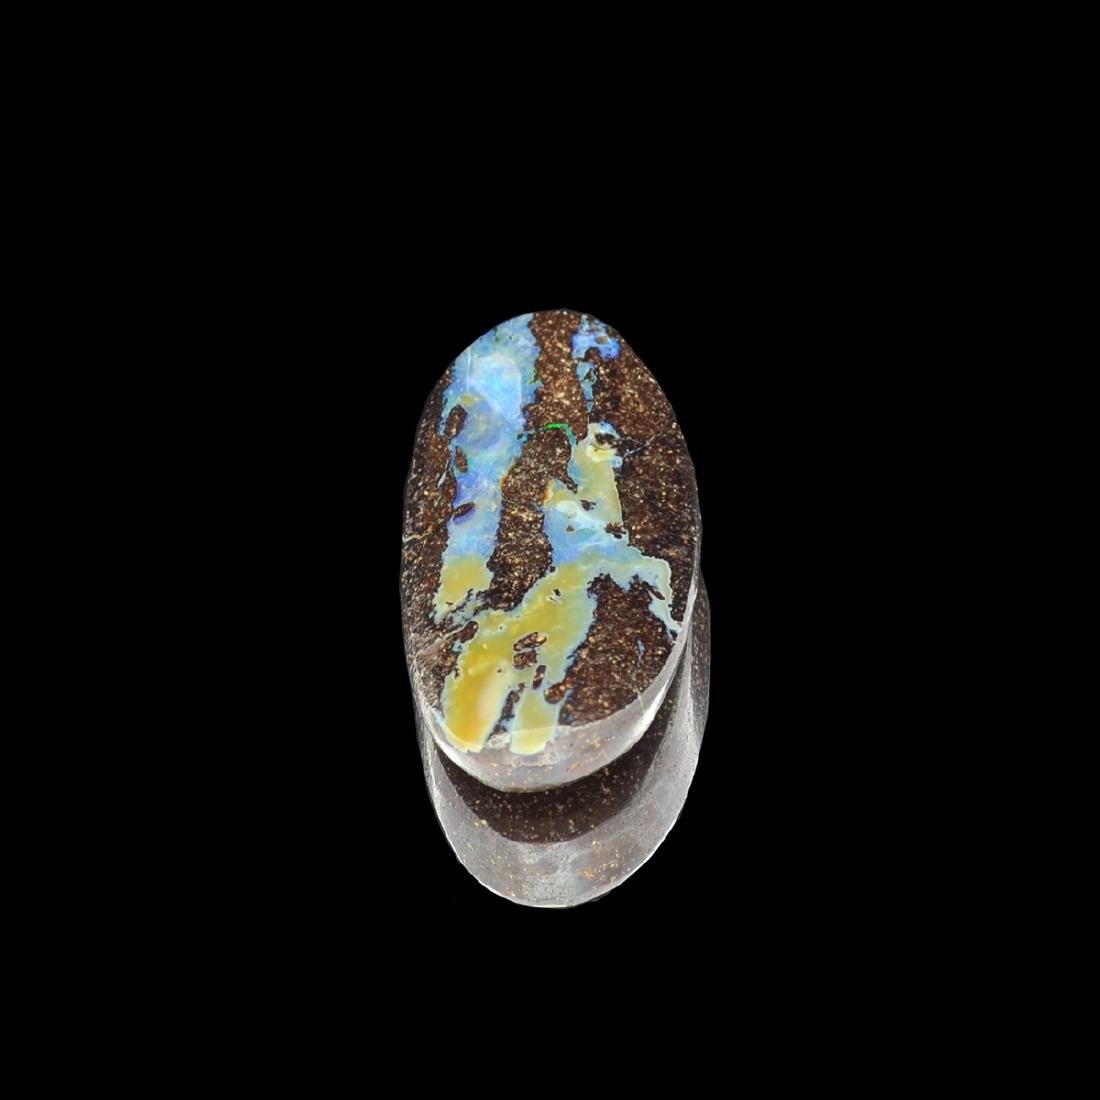 Gorgeous 24.30CT Rare Boulder Opal Gemstone